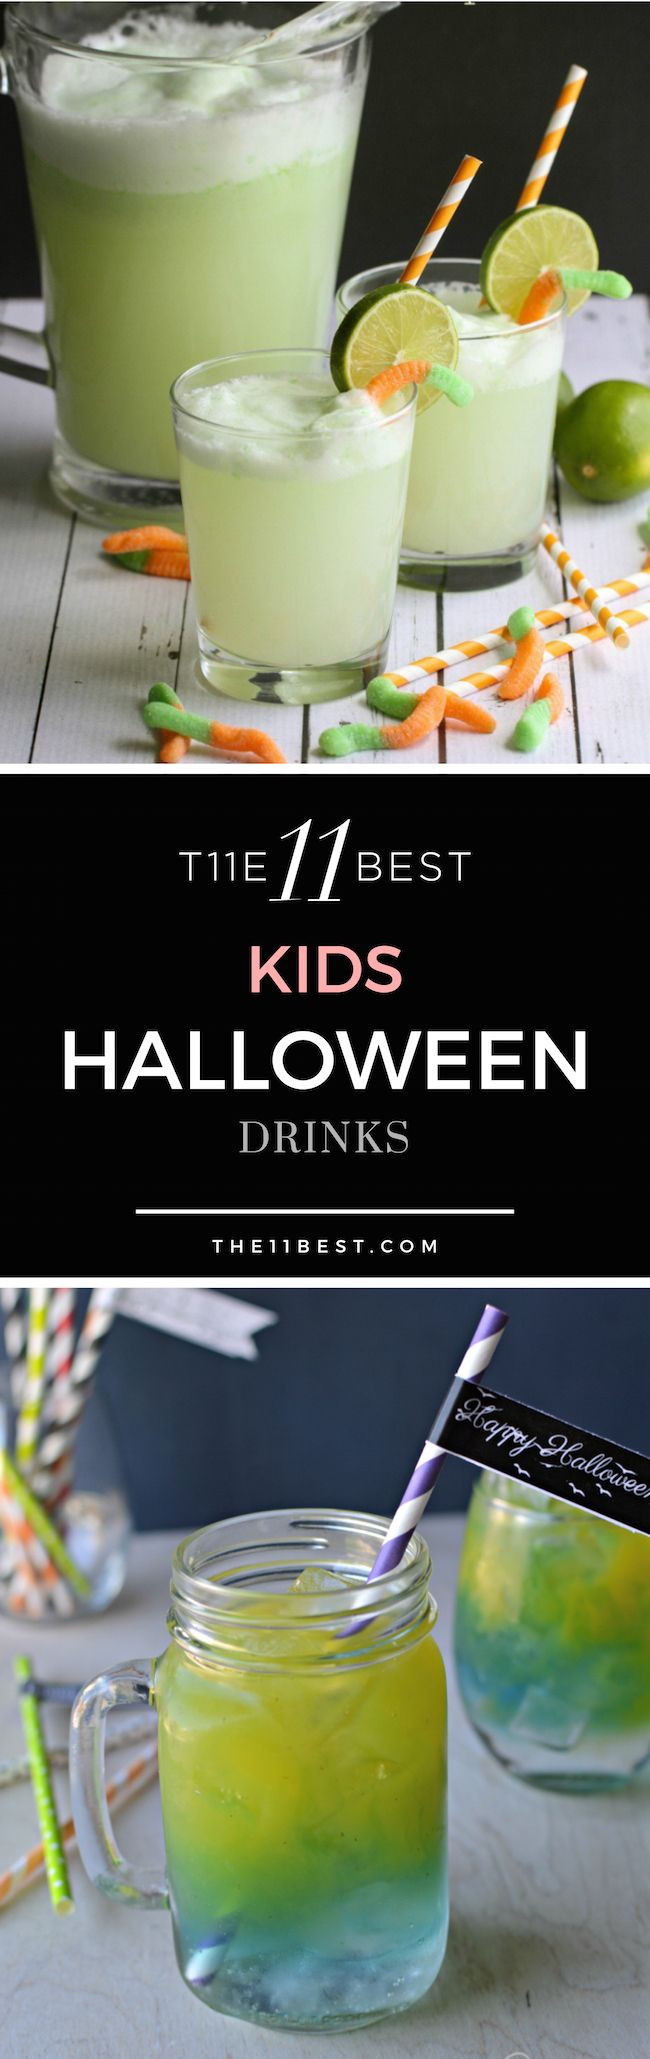 Halloween Drinks Pinterest  1000 ideas about Halloween Drinks on Pinterest